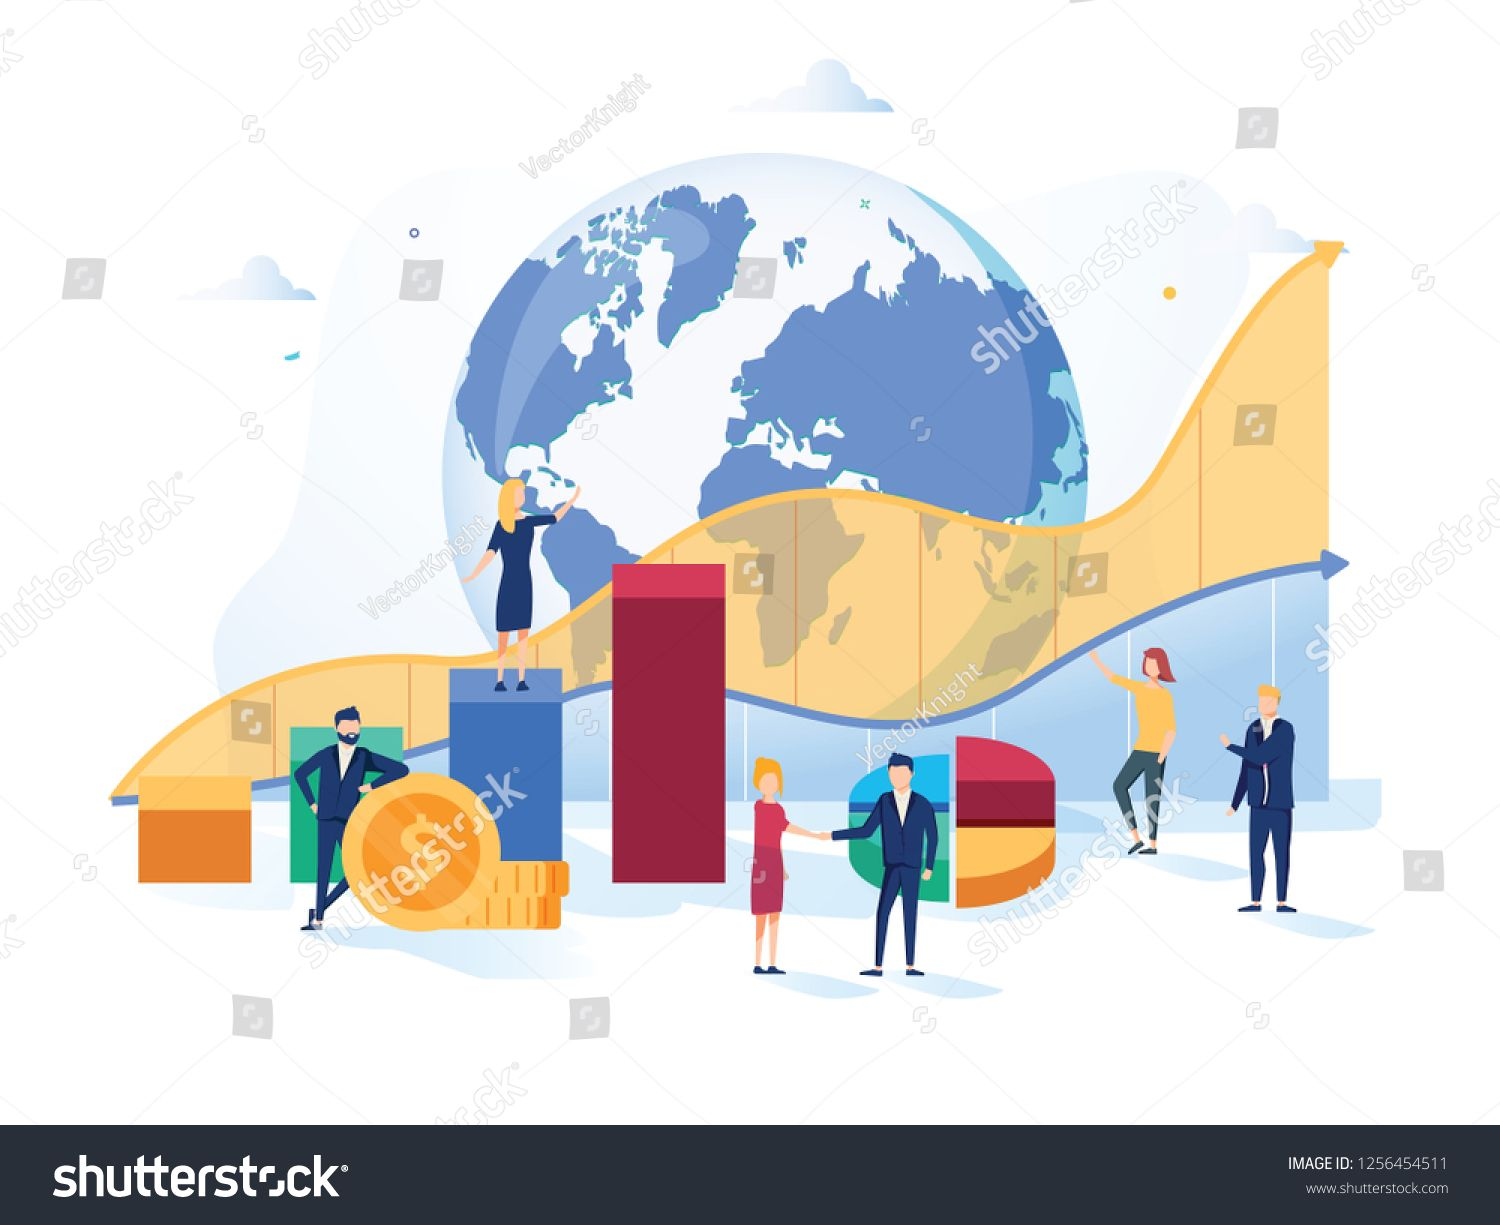 Stock Market Vector Illustration Flat Mini Money Growth Persons Concept With Positive And Succ Vector Illustration Creative Poster Design Cloud Infrastructure